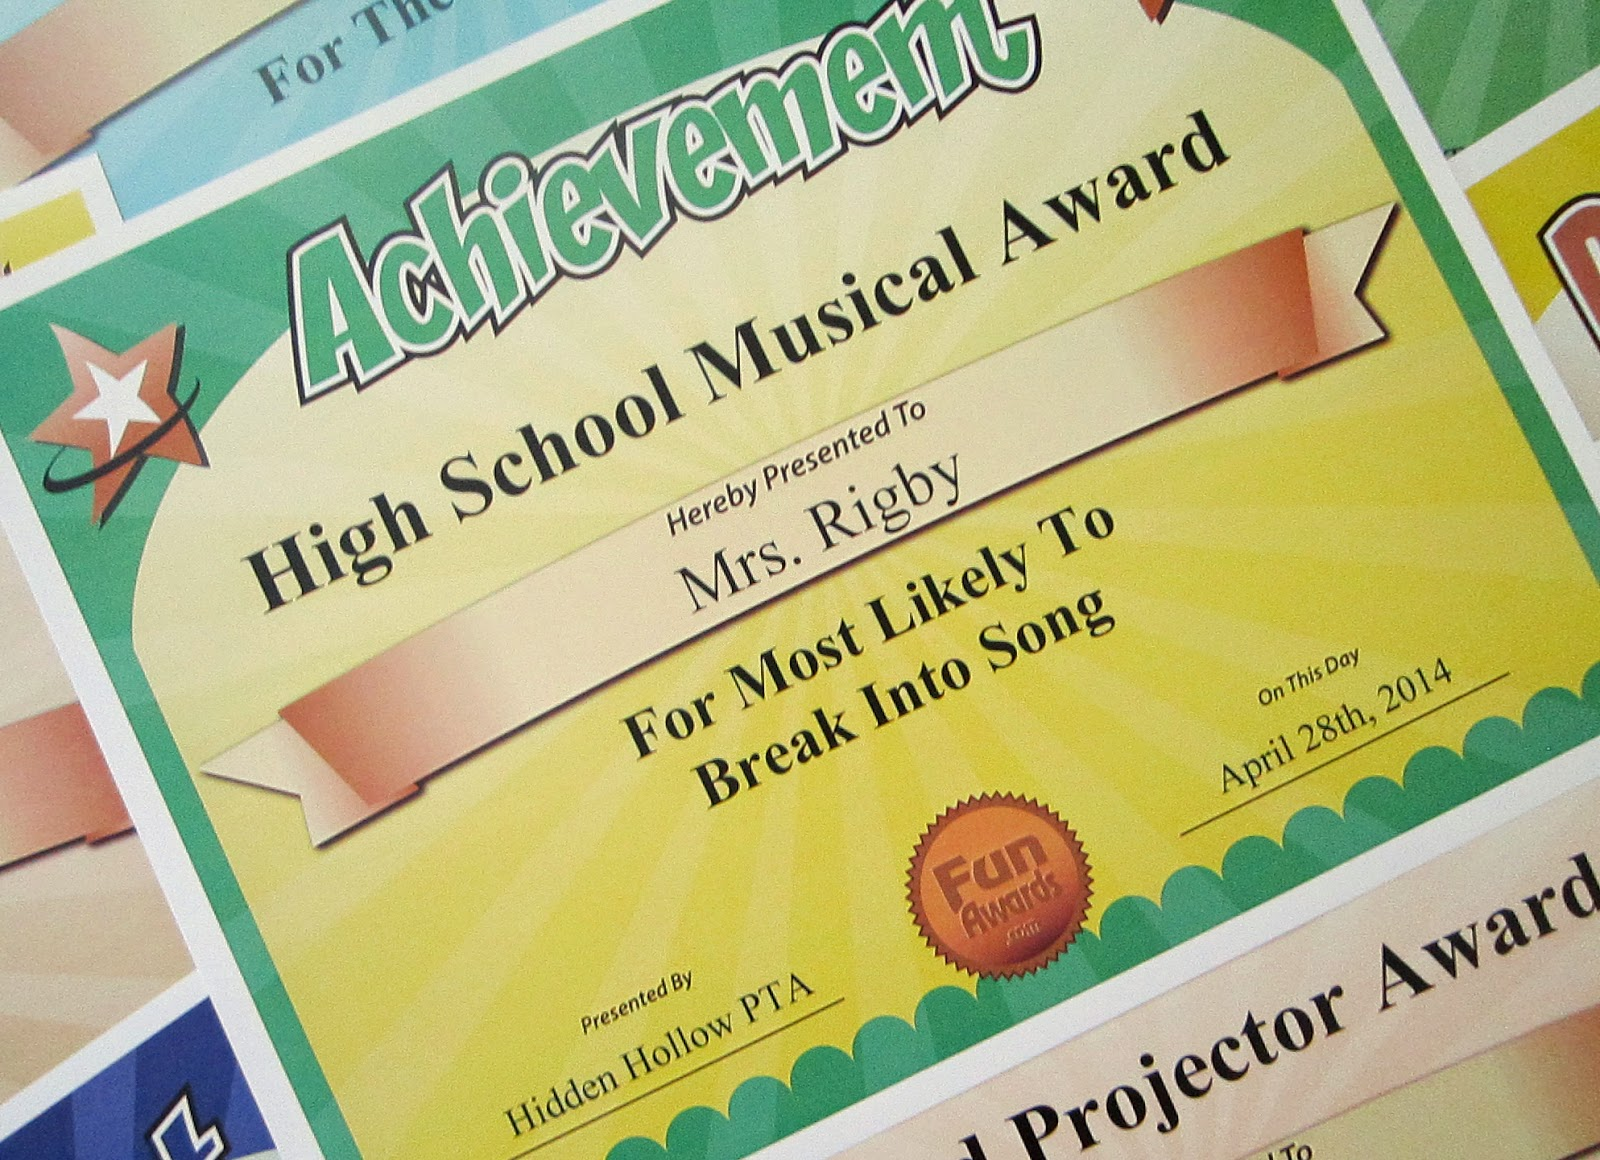 Mlt songwriting awards for students